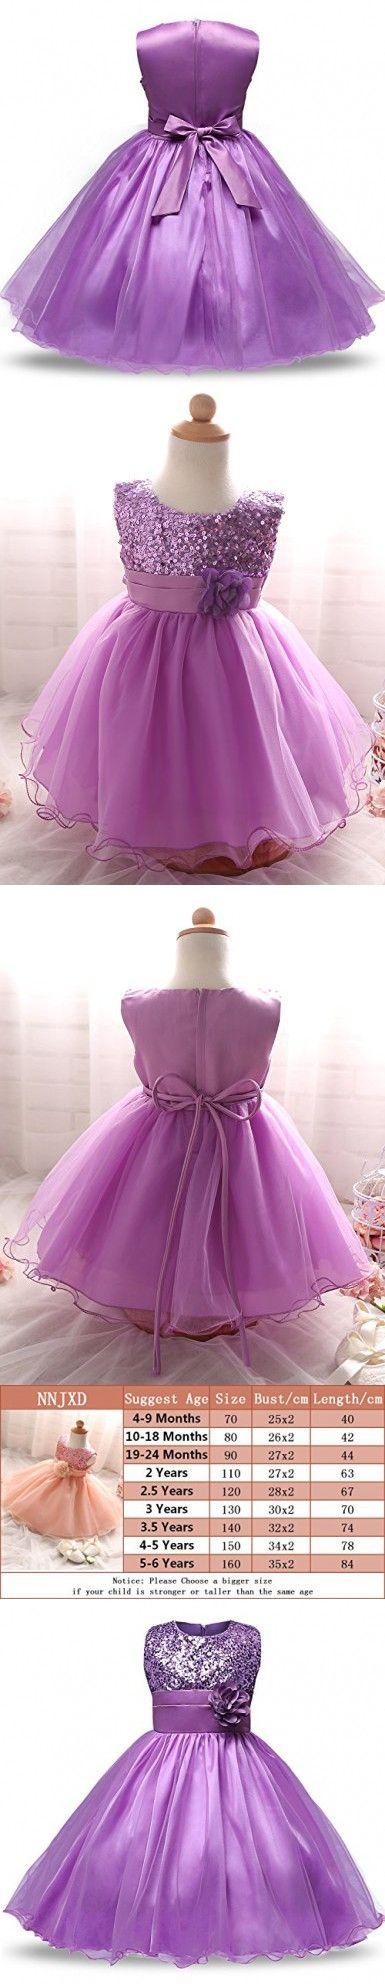 NNJXD Girl Flower Sequin Princess Tutu Tulle Baby Party Dress Size 10-18 Months Purple